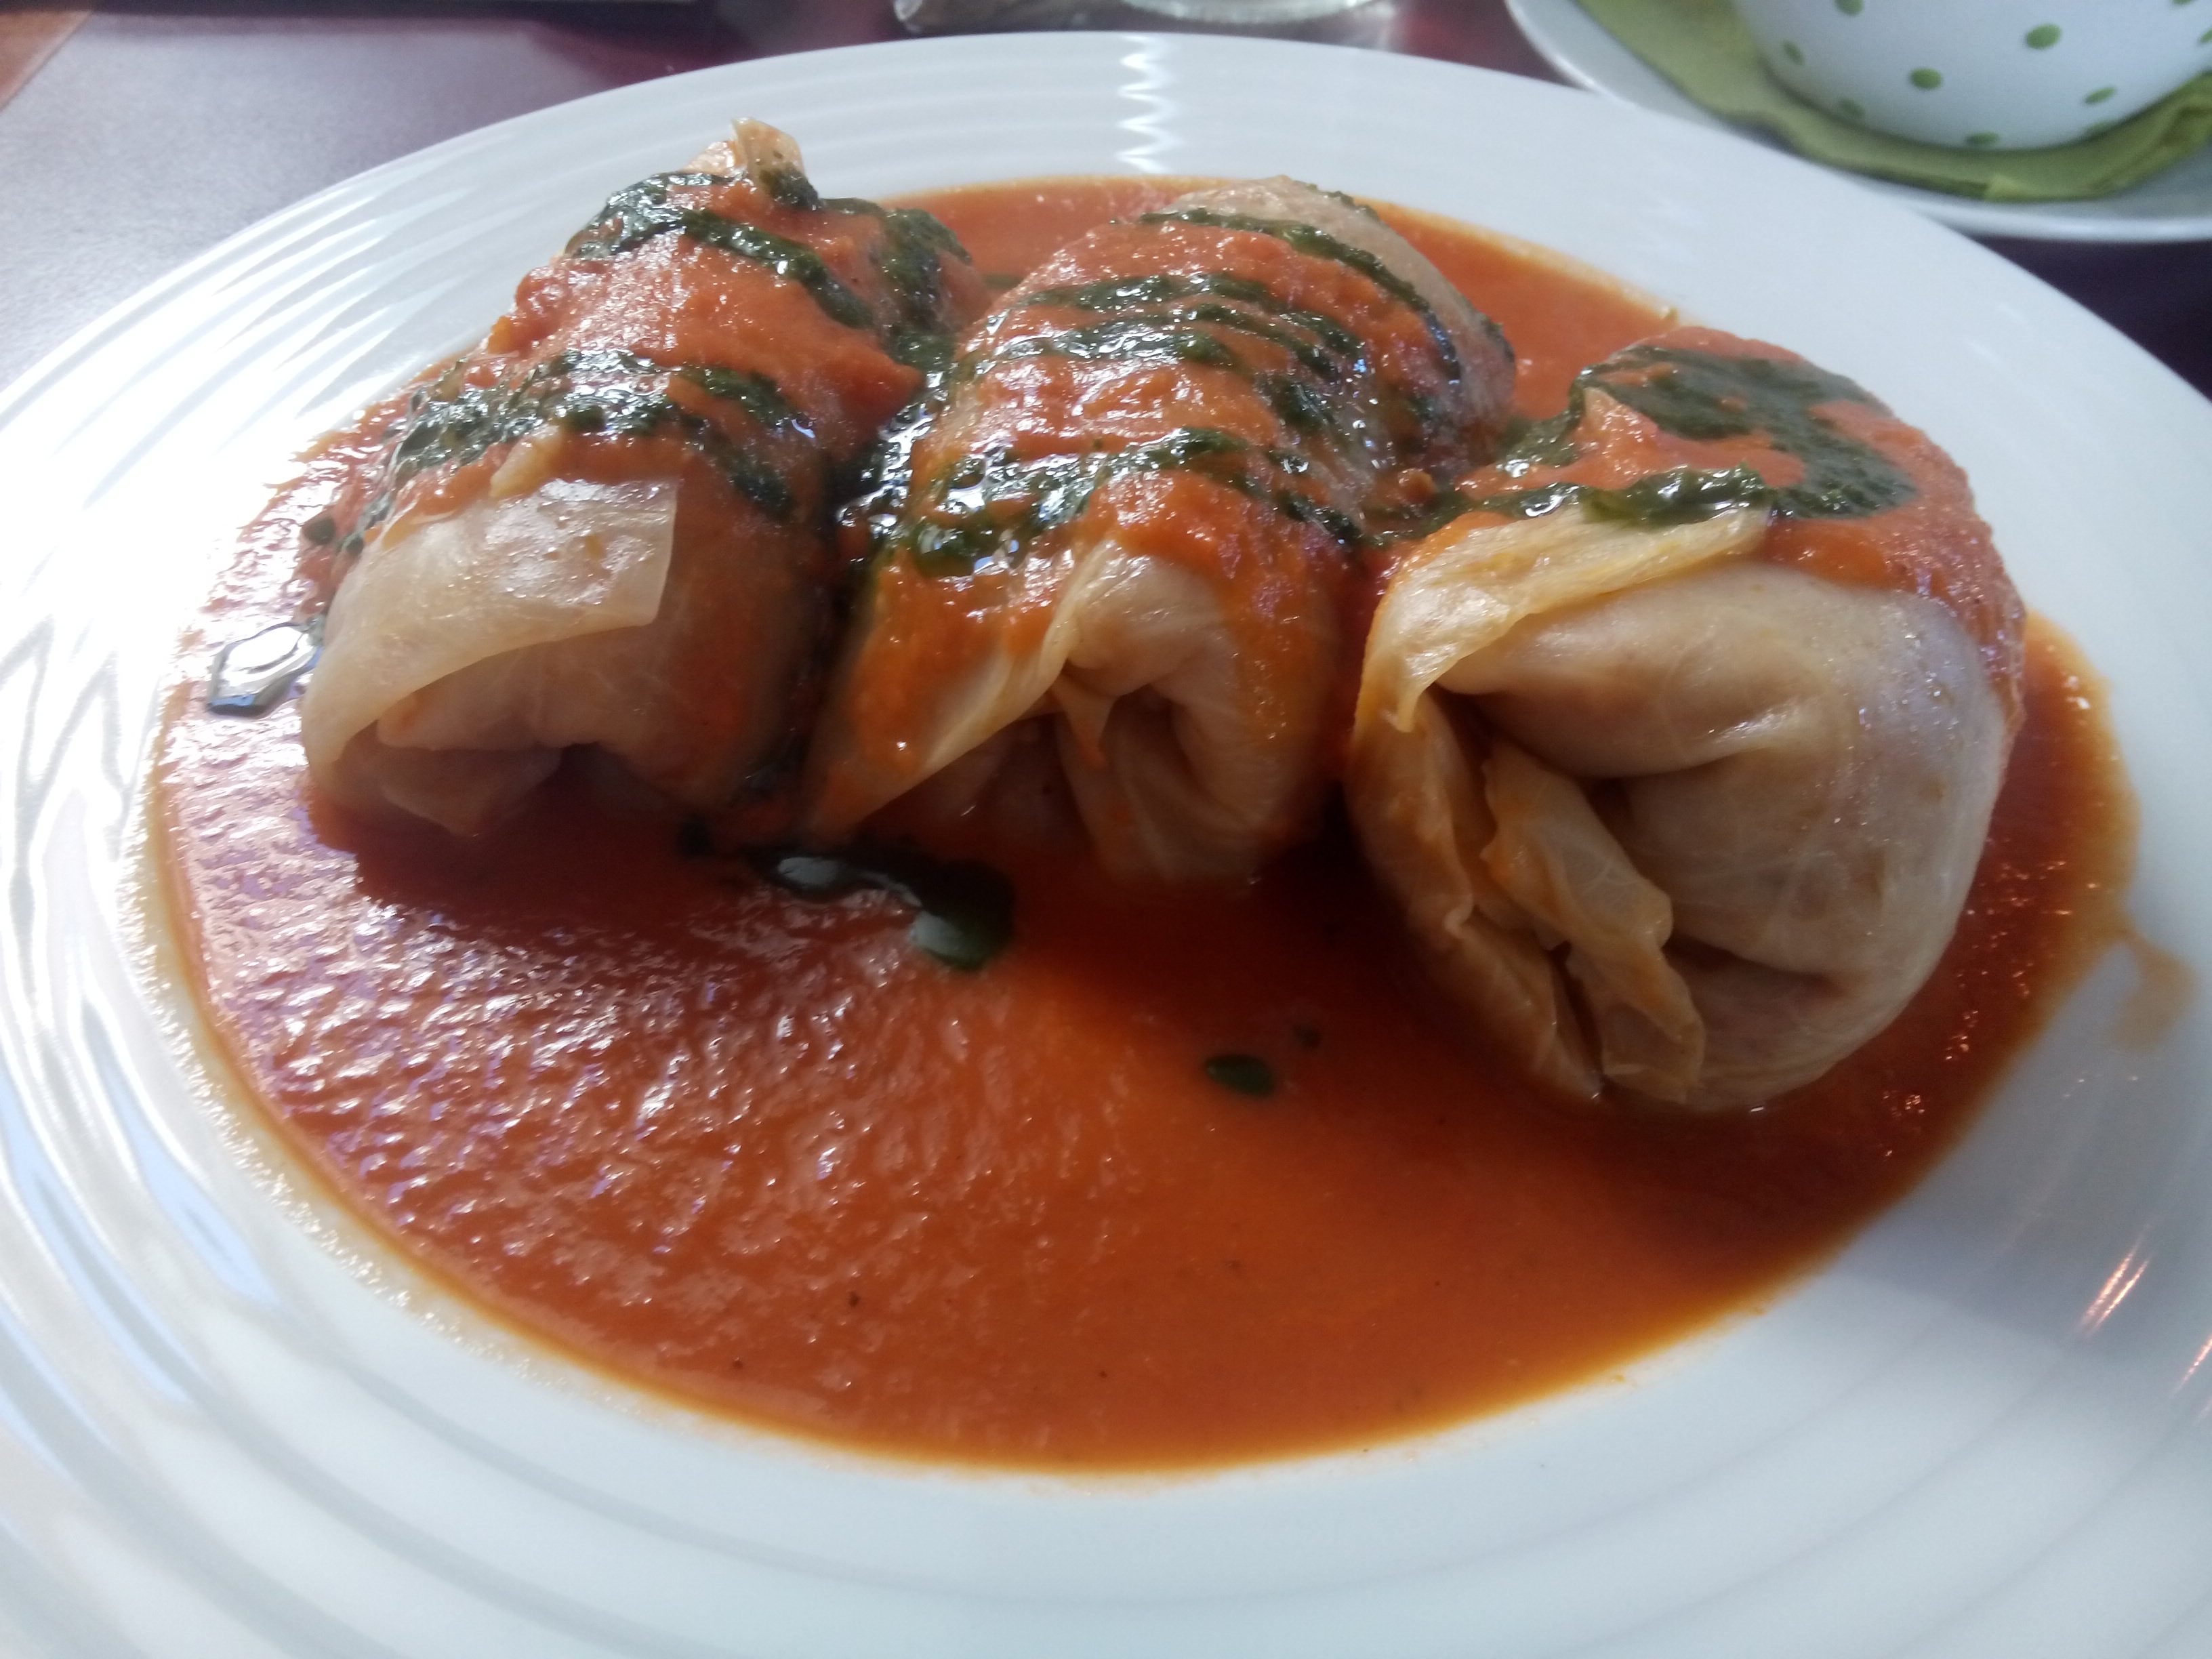 Three cylindrical stuffed cabbage leaves drown in red sauce on a white plate